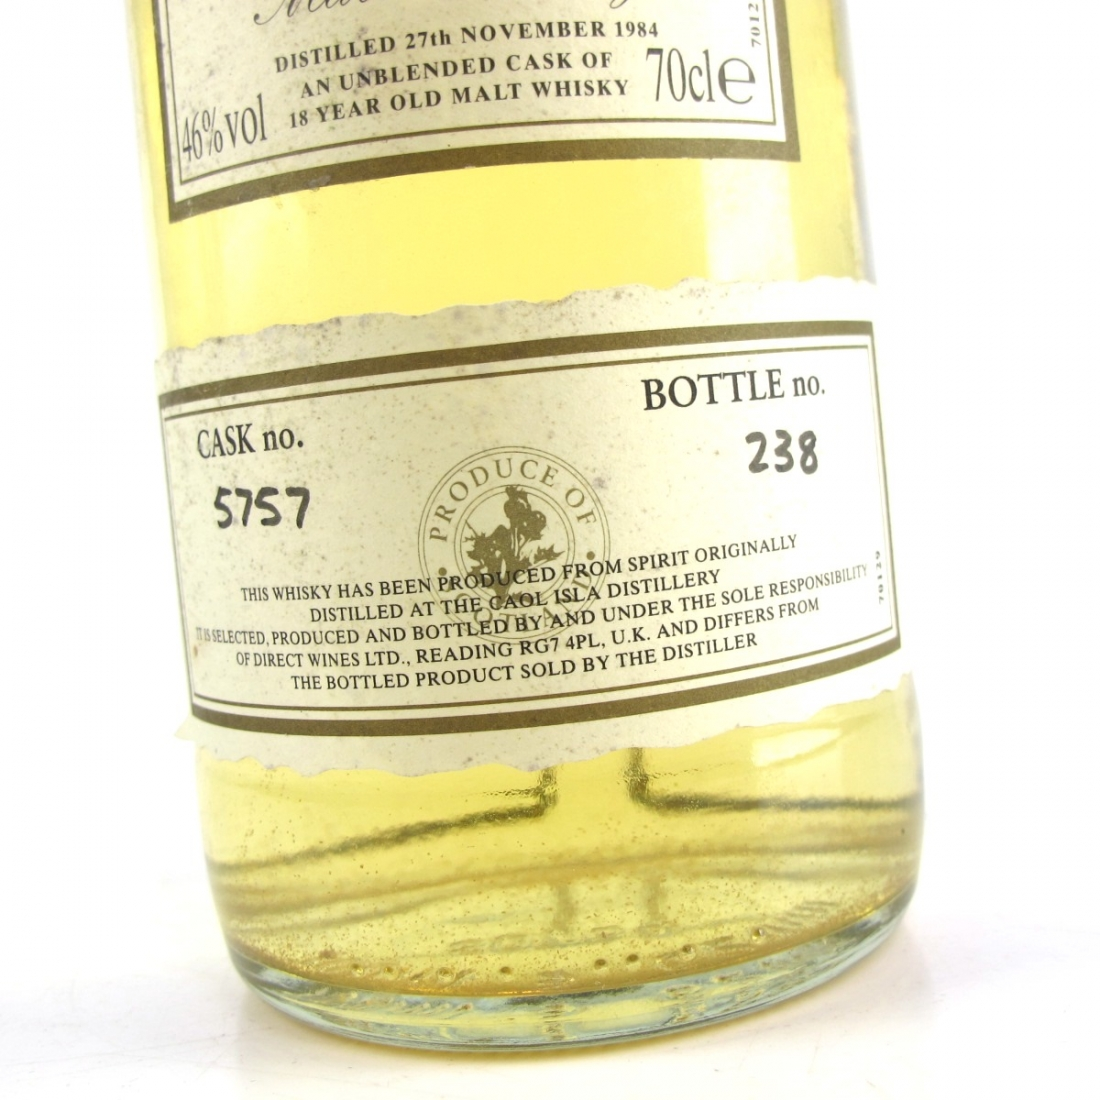 Caol Ila 1984 First Cask 18 Year Old